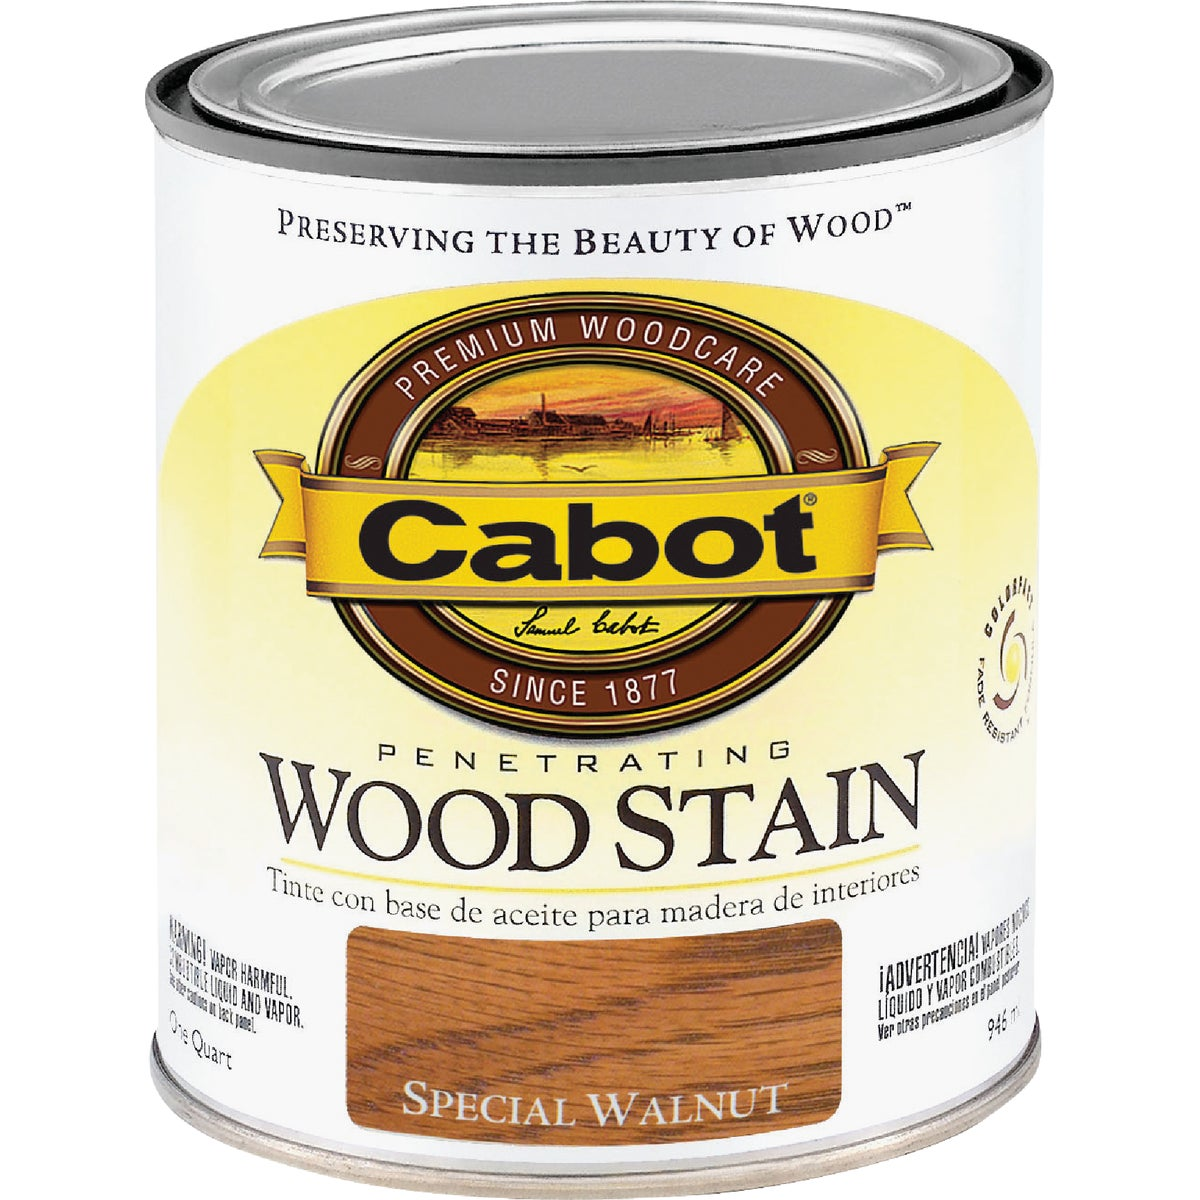 INT SP WALNUT WOOD STAIN - 144.0008128.005 by Valspar Corp